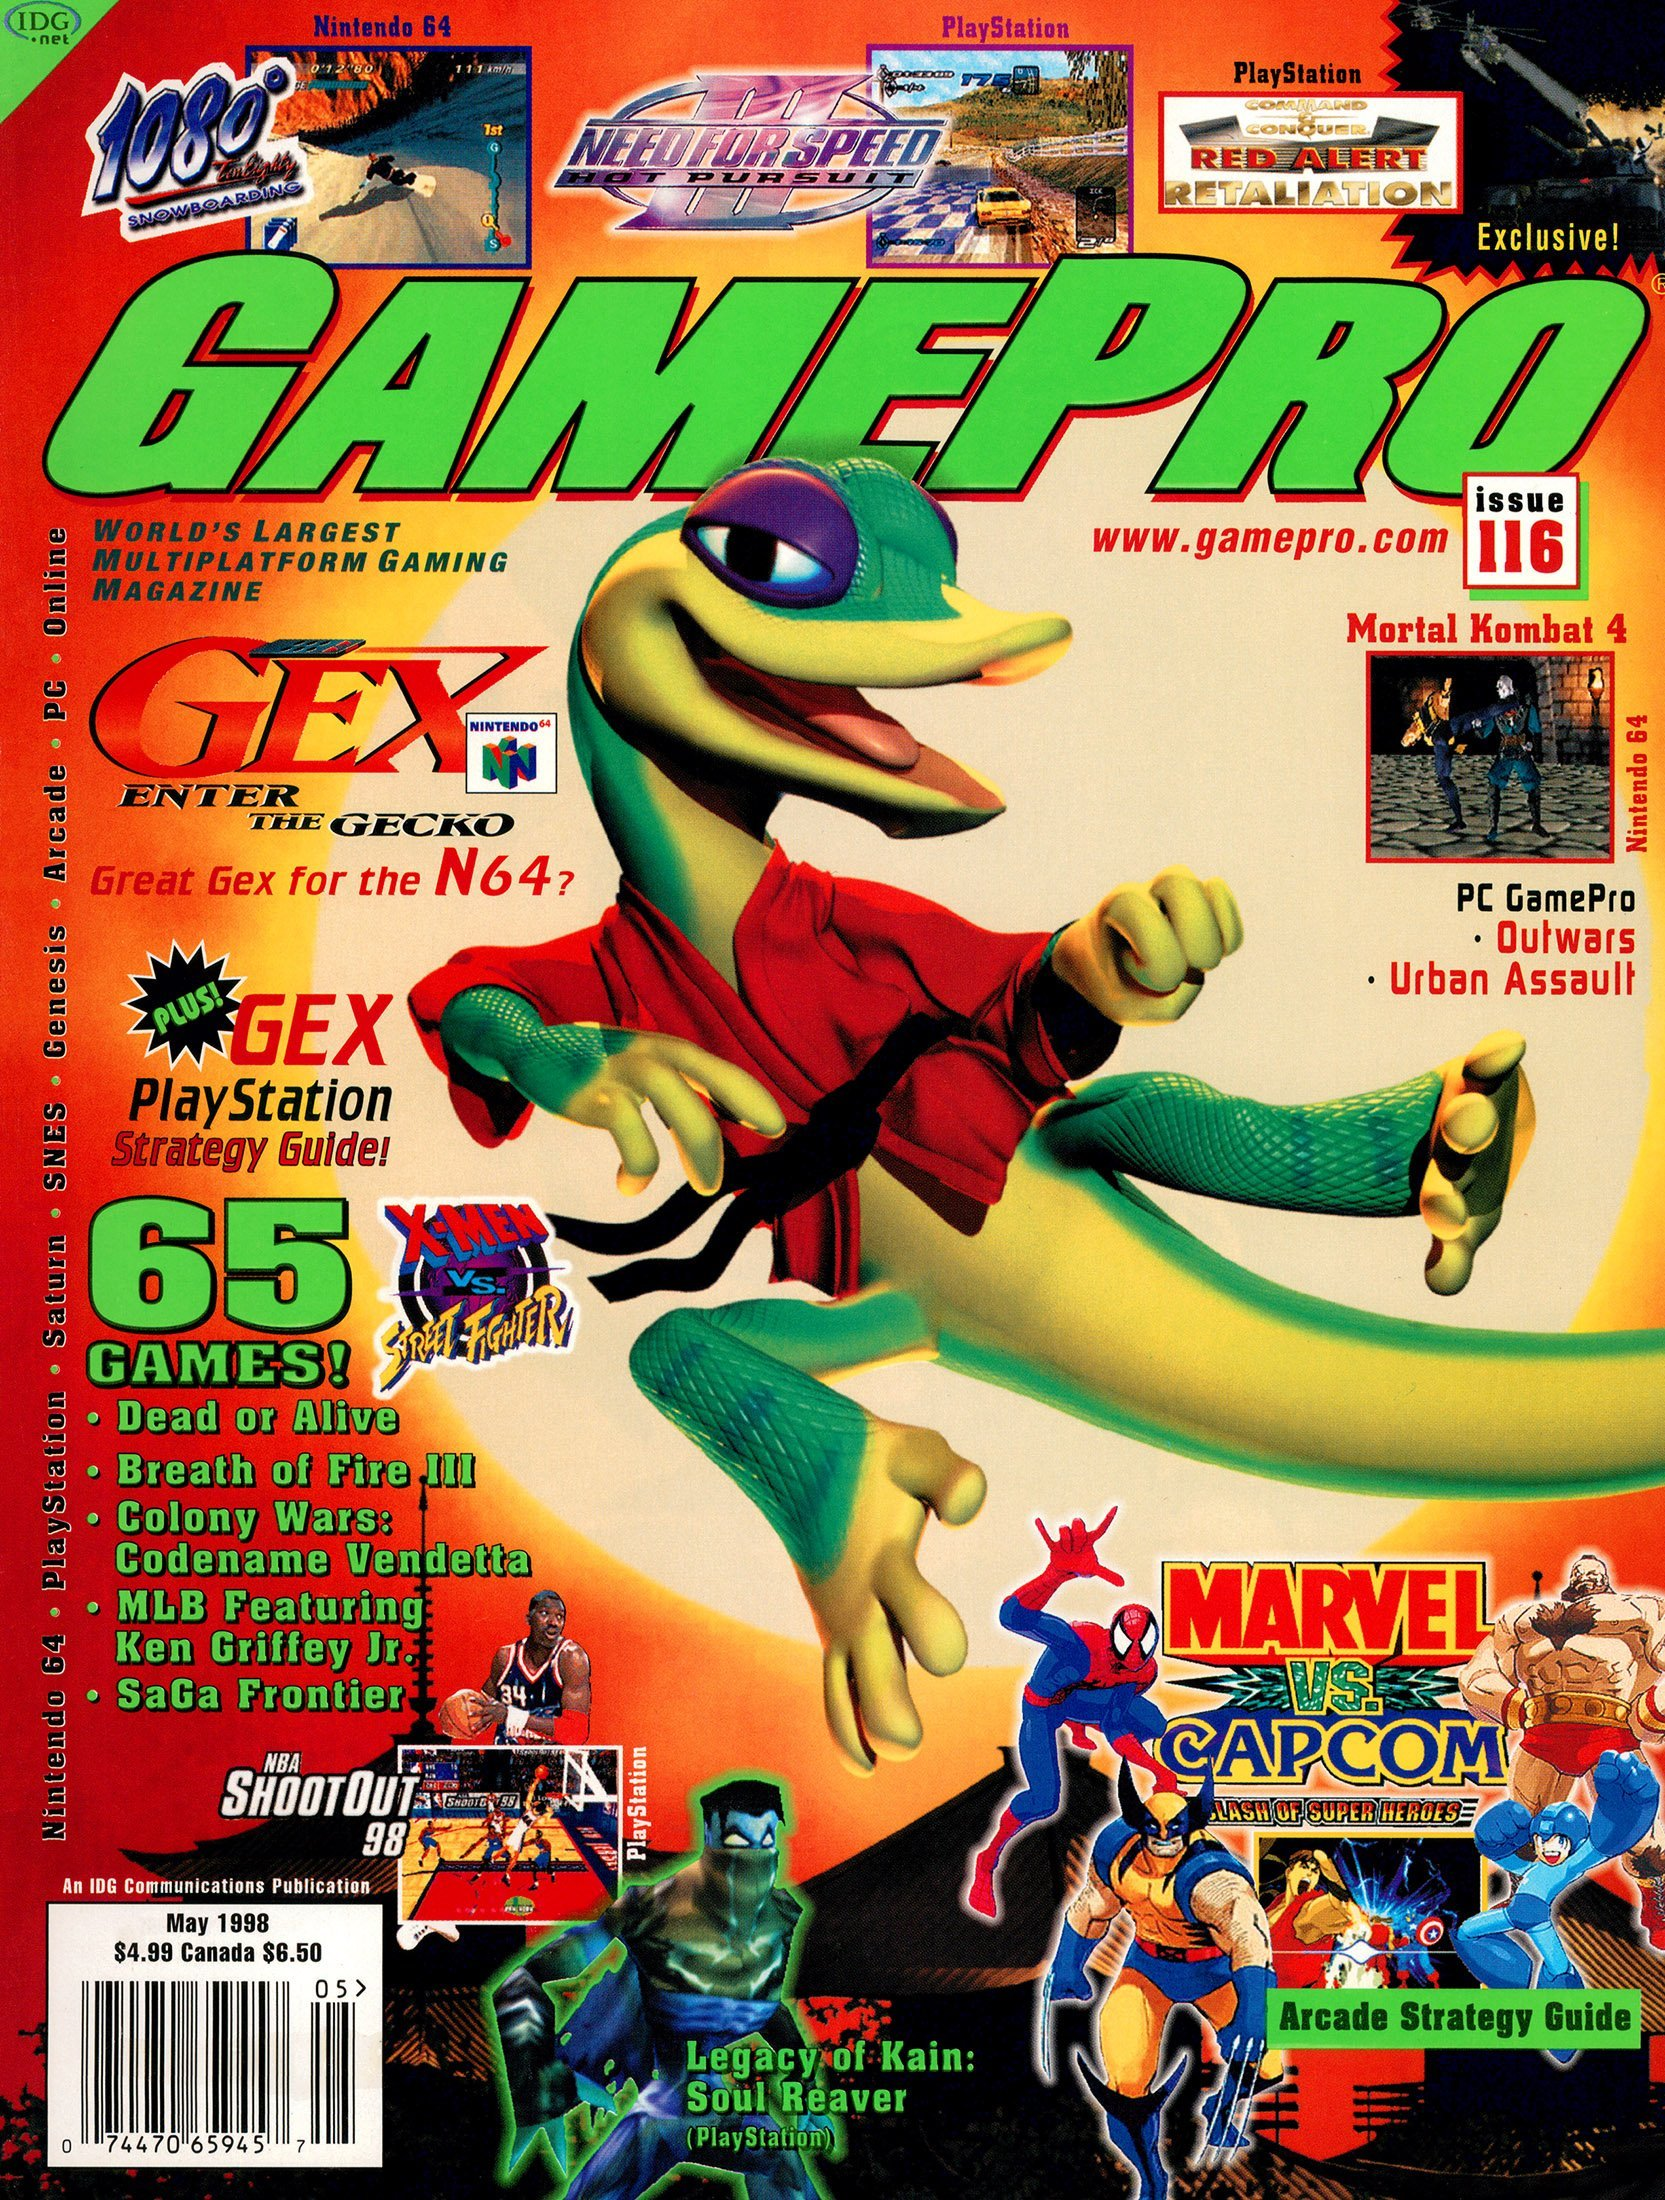 GamePro Issue 116 May 1998